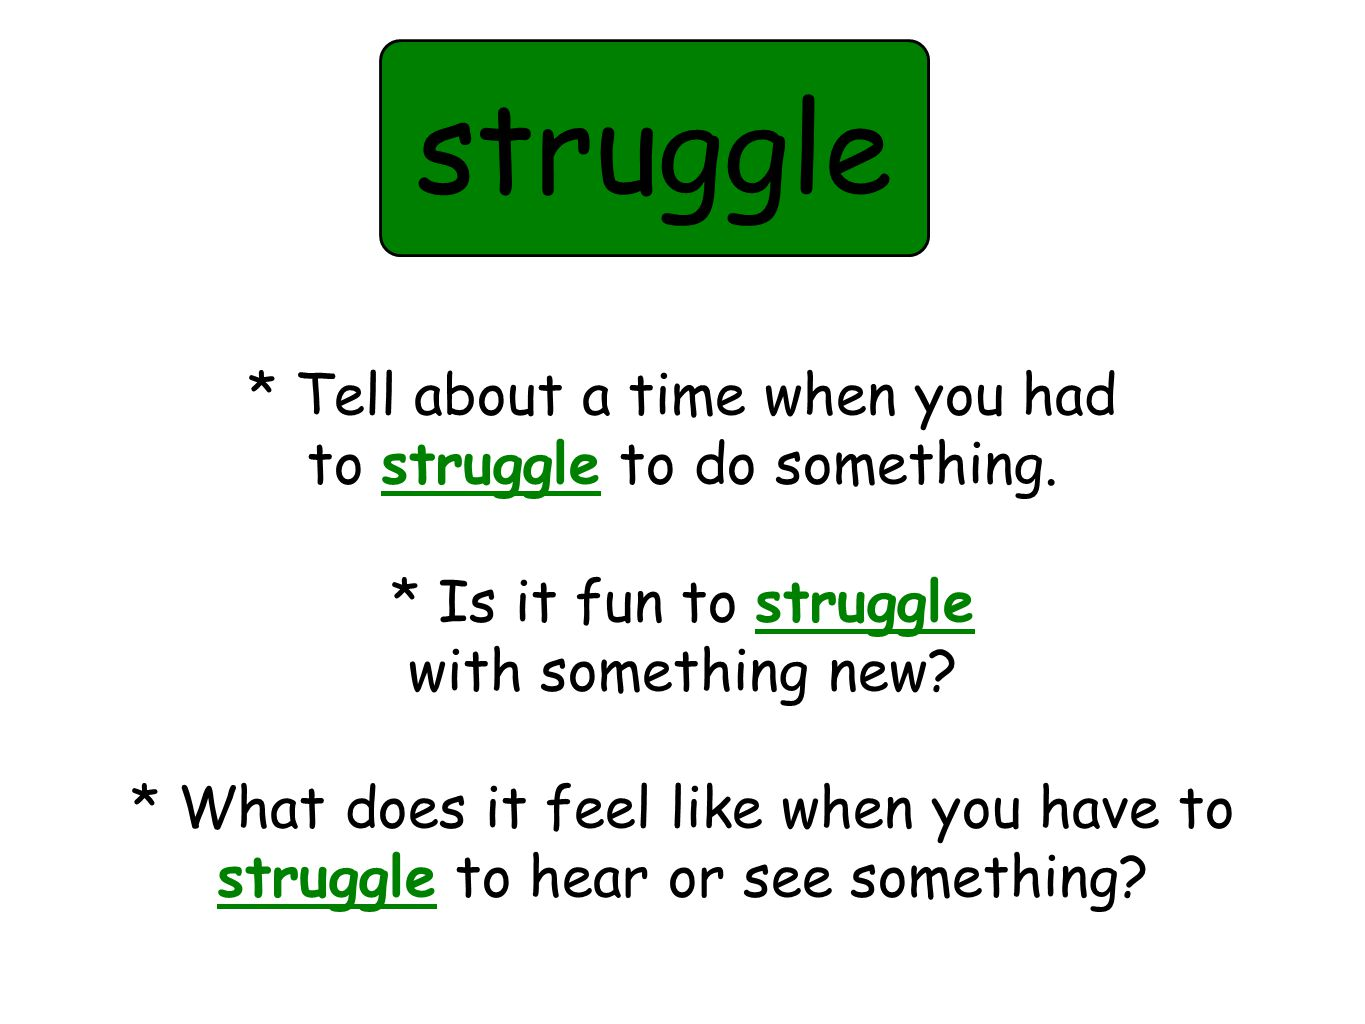 * Tell about a time when you had to struggle to do something.